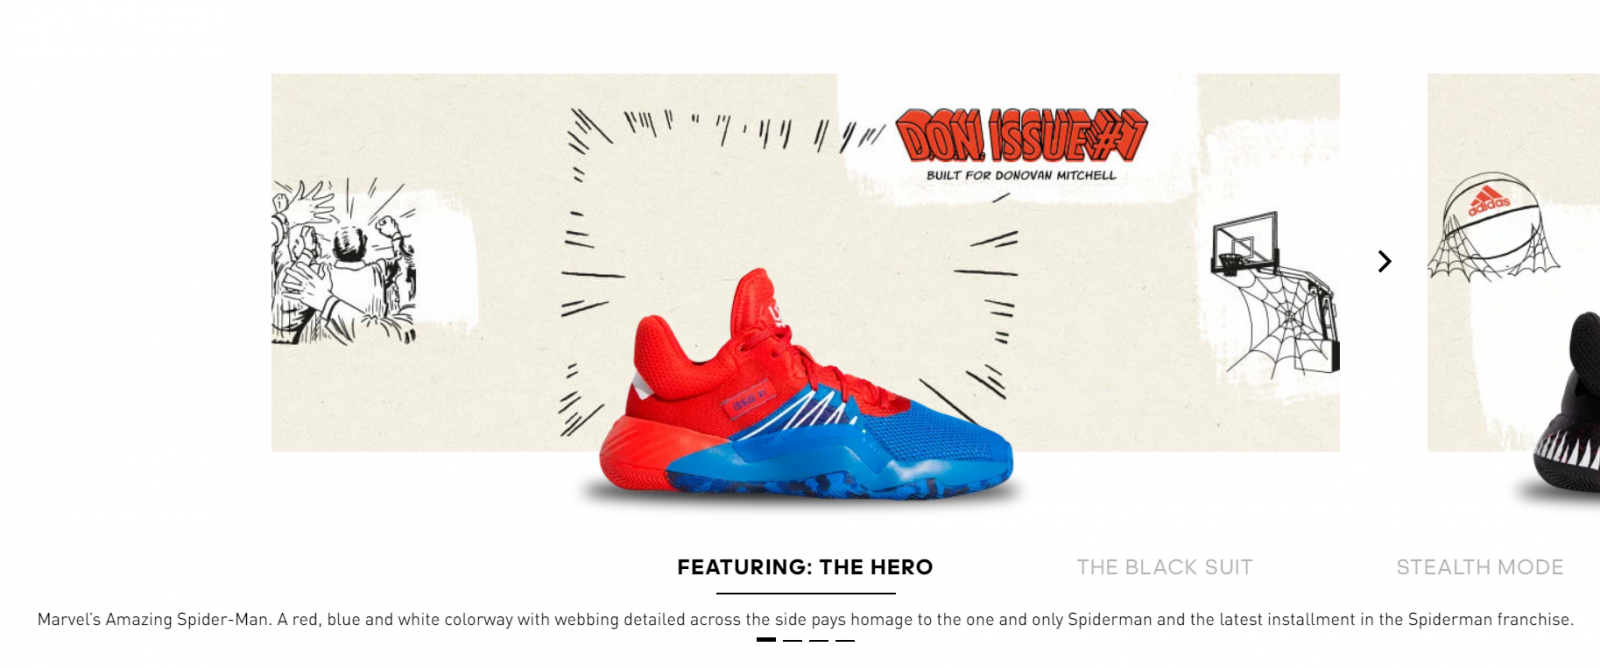 screenshot-www.adidas.com-2019.06.26-10-27-59.png